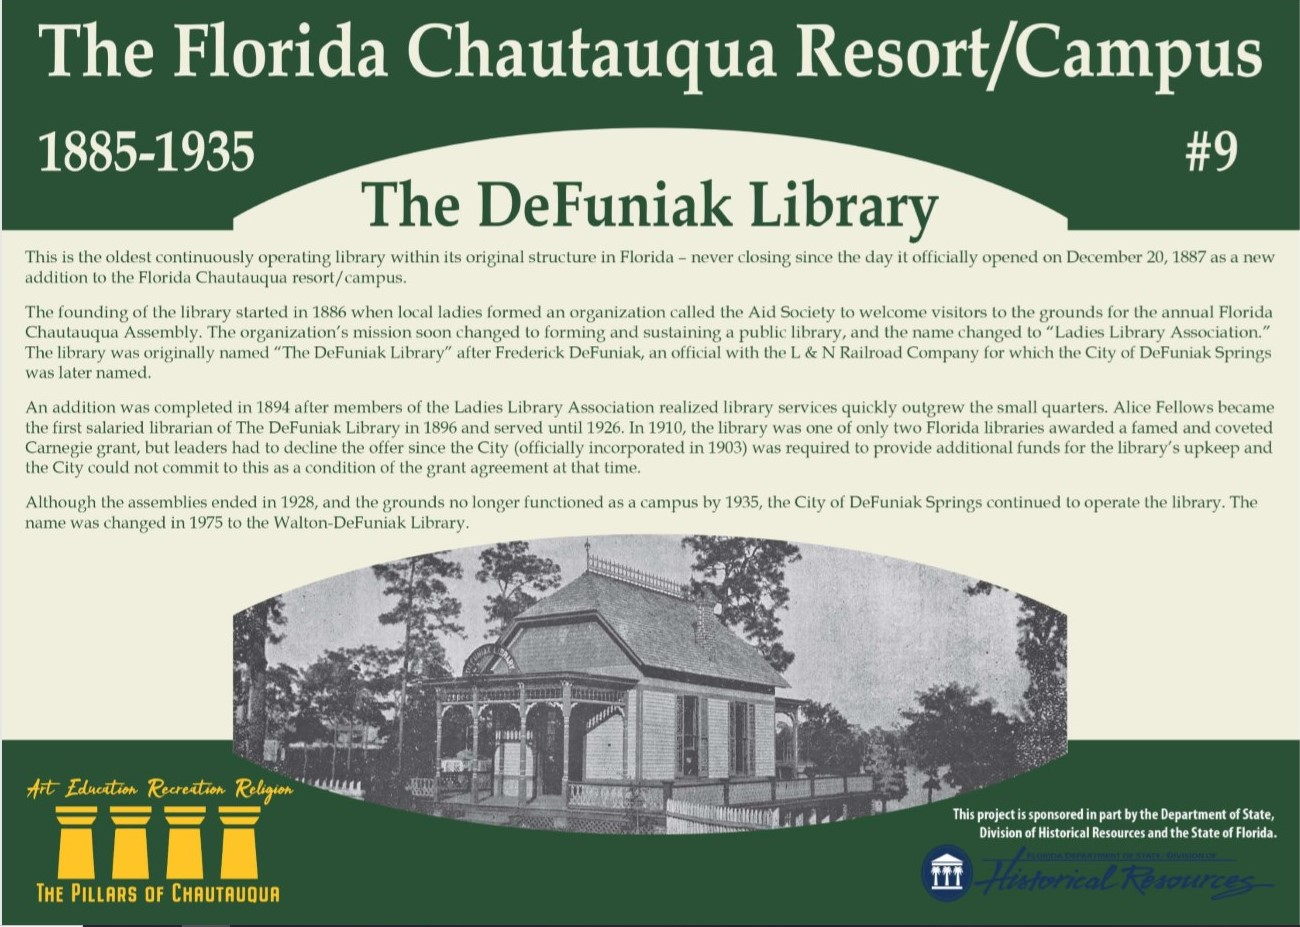 Sign with information about the DeFuniak Library